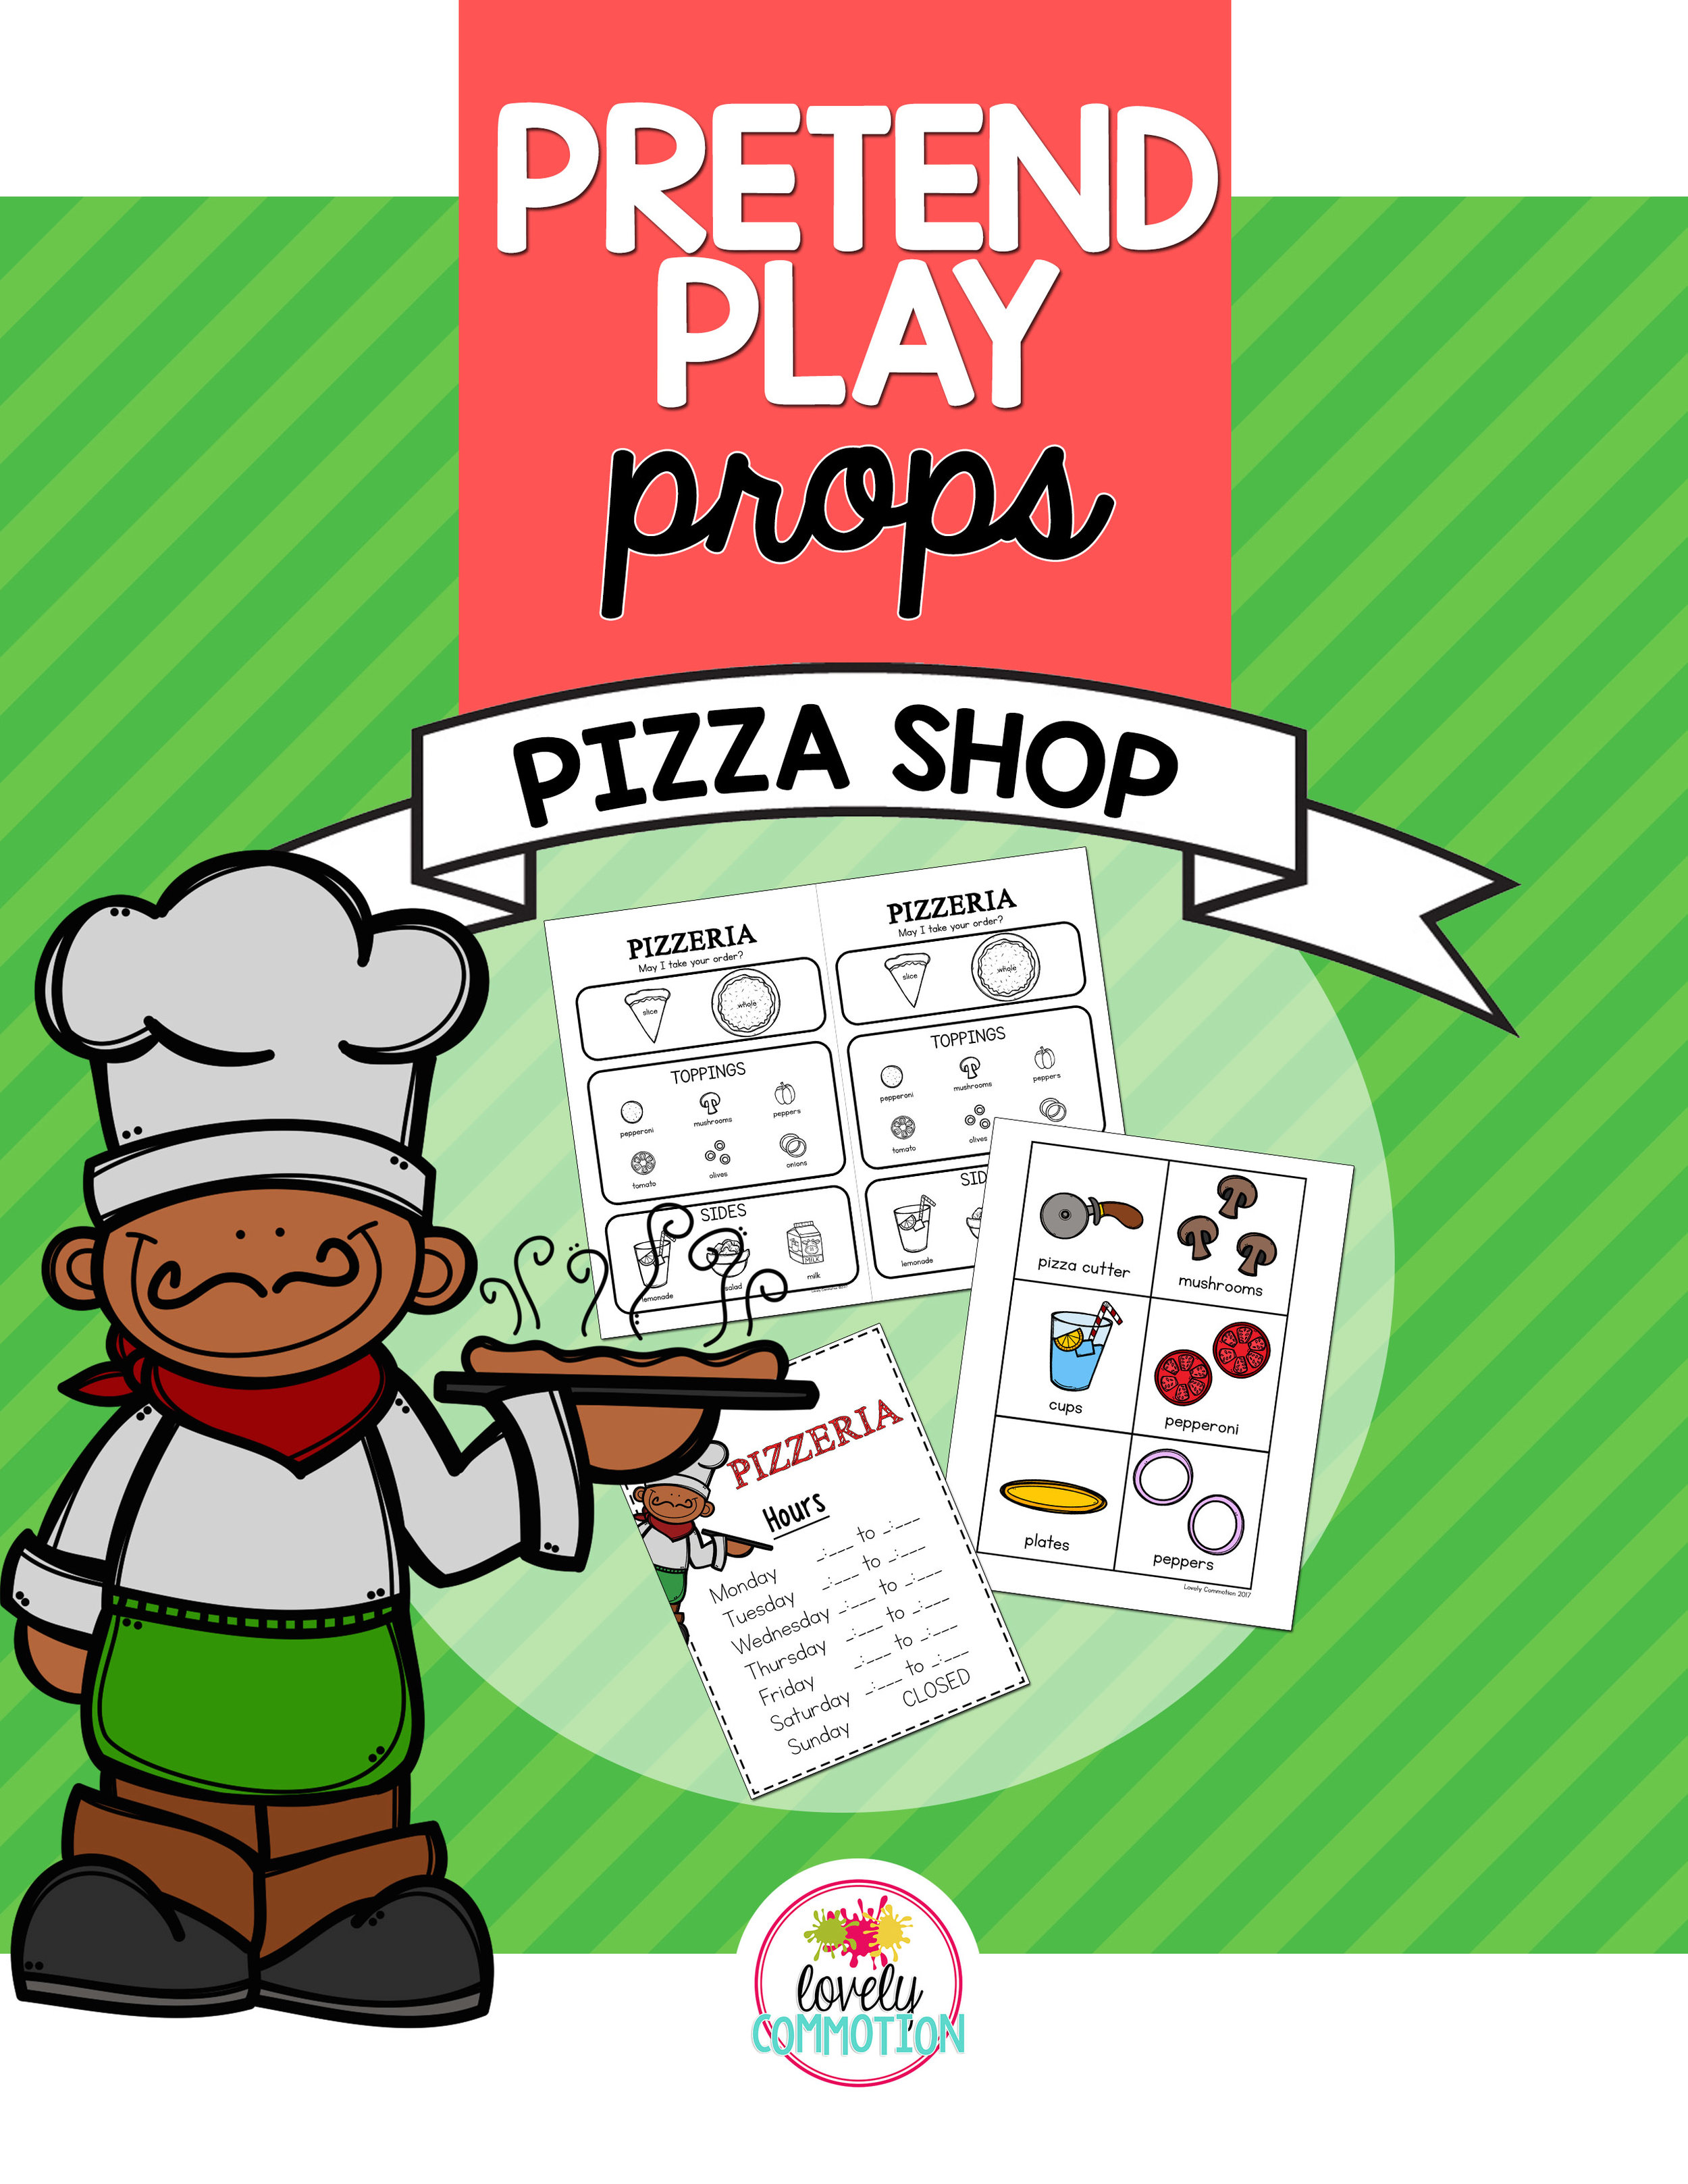 pizza shop pretend play props.jpg